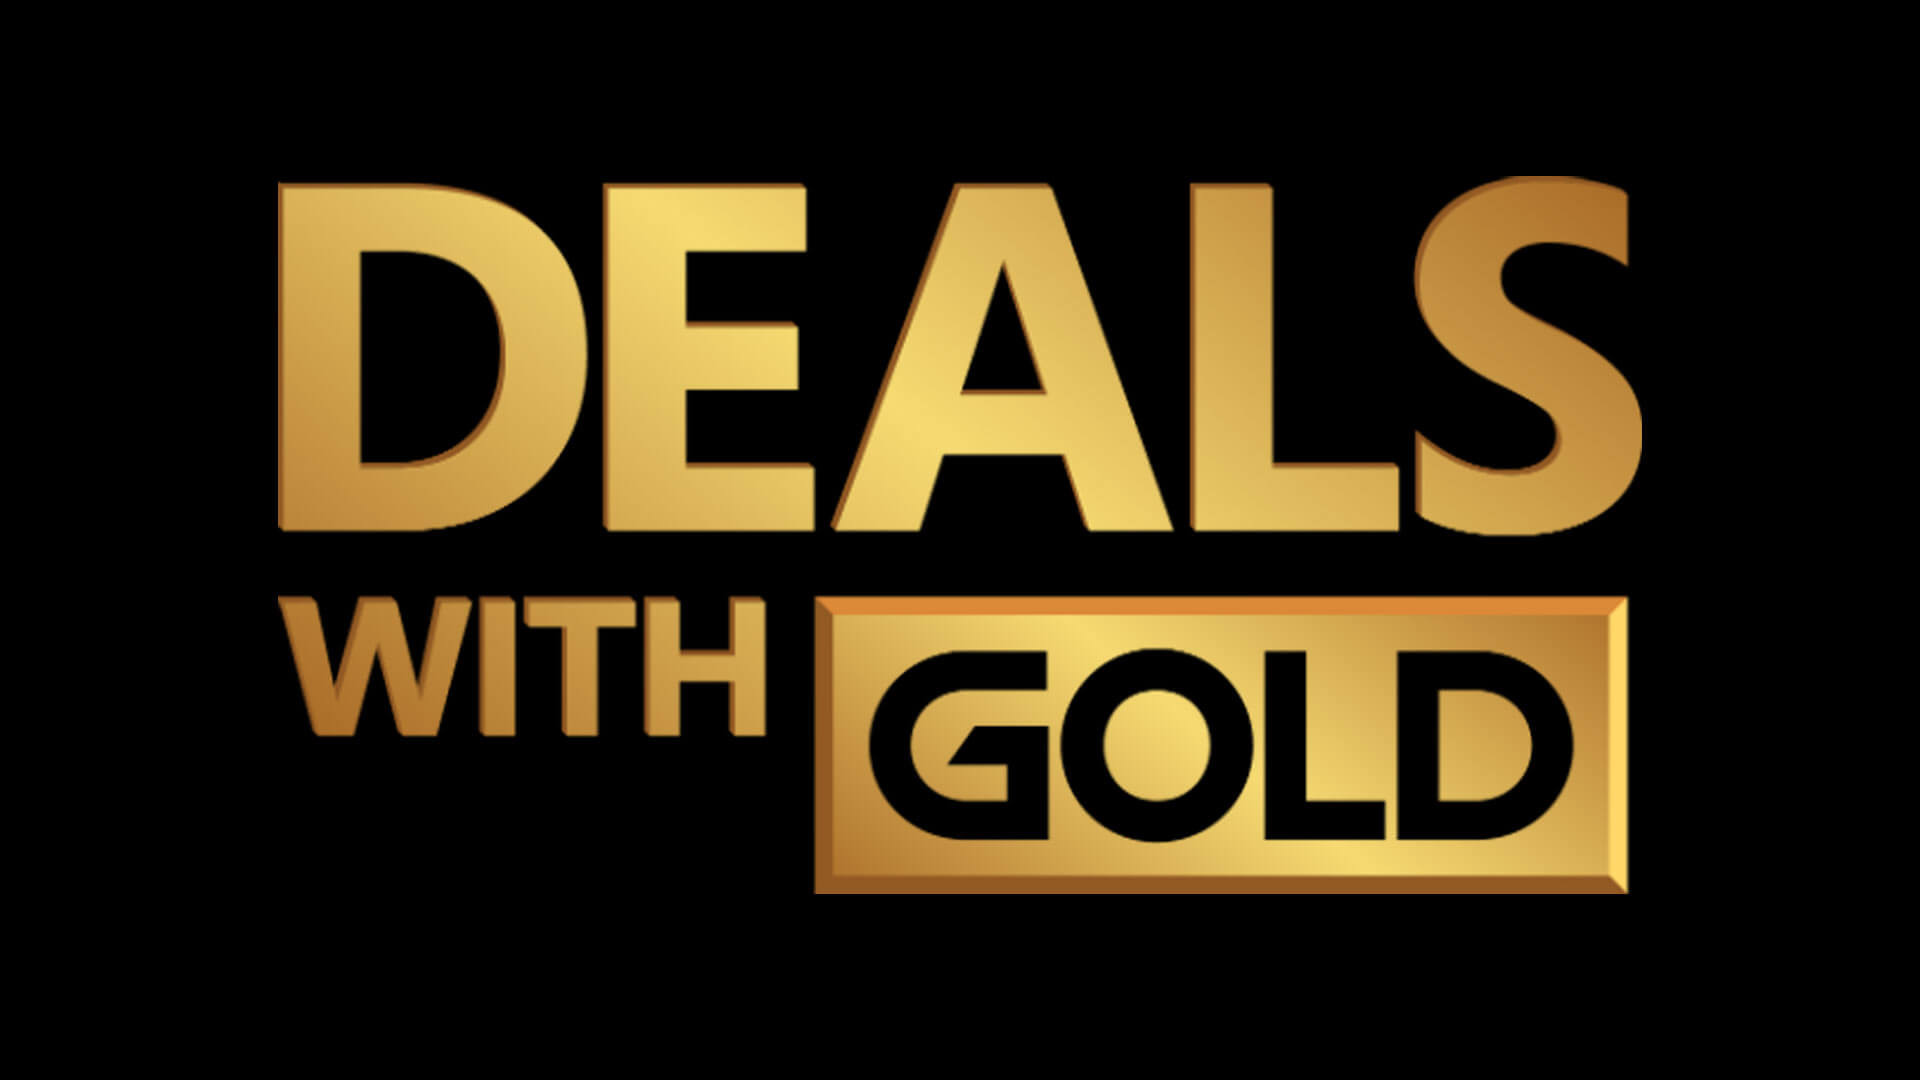 Deals with Gold semaine 08